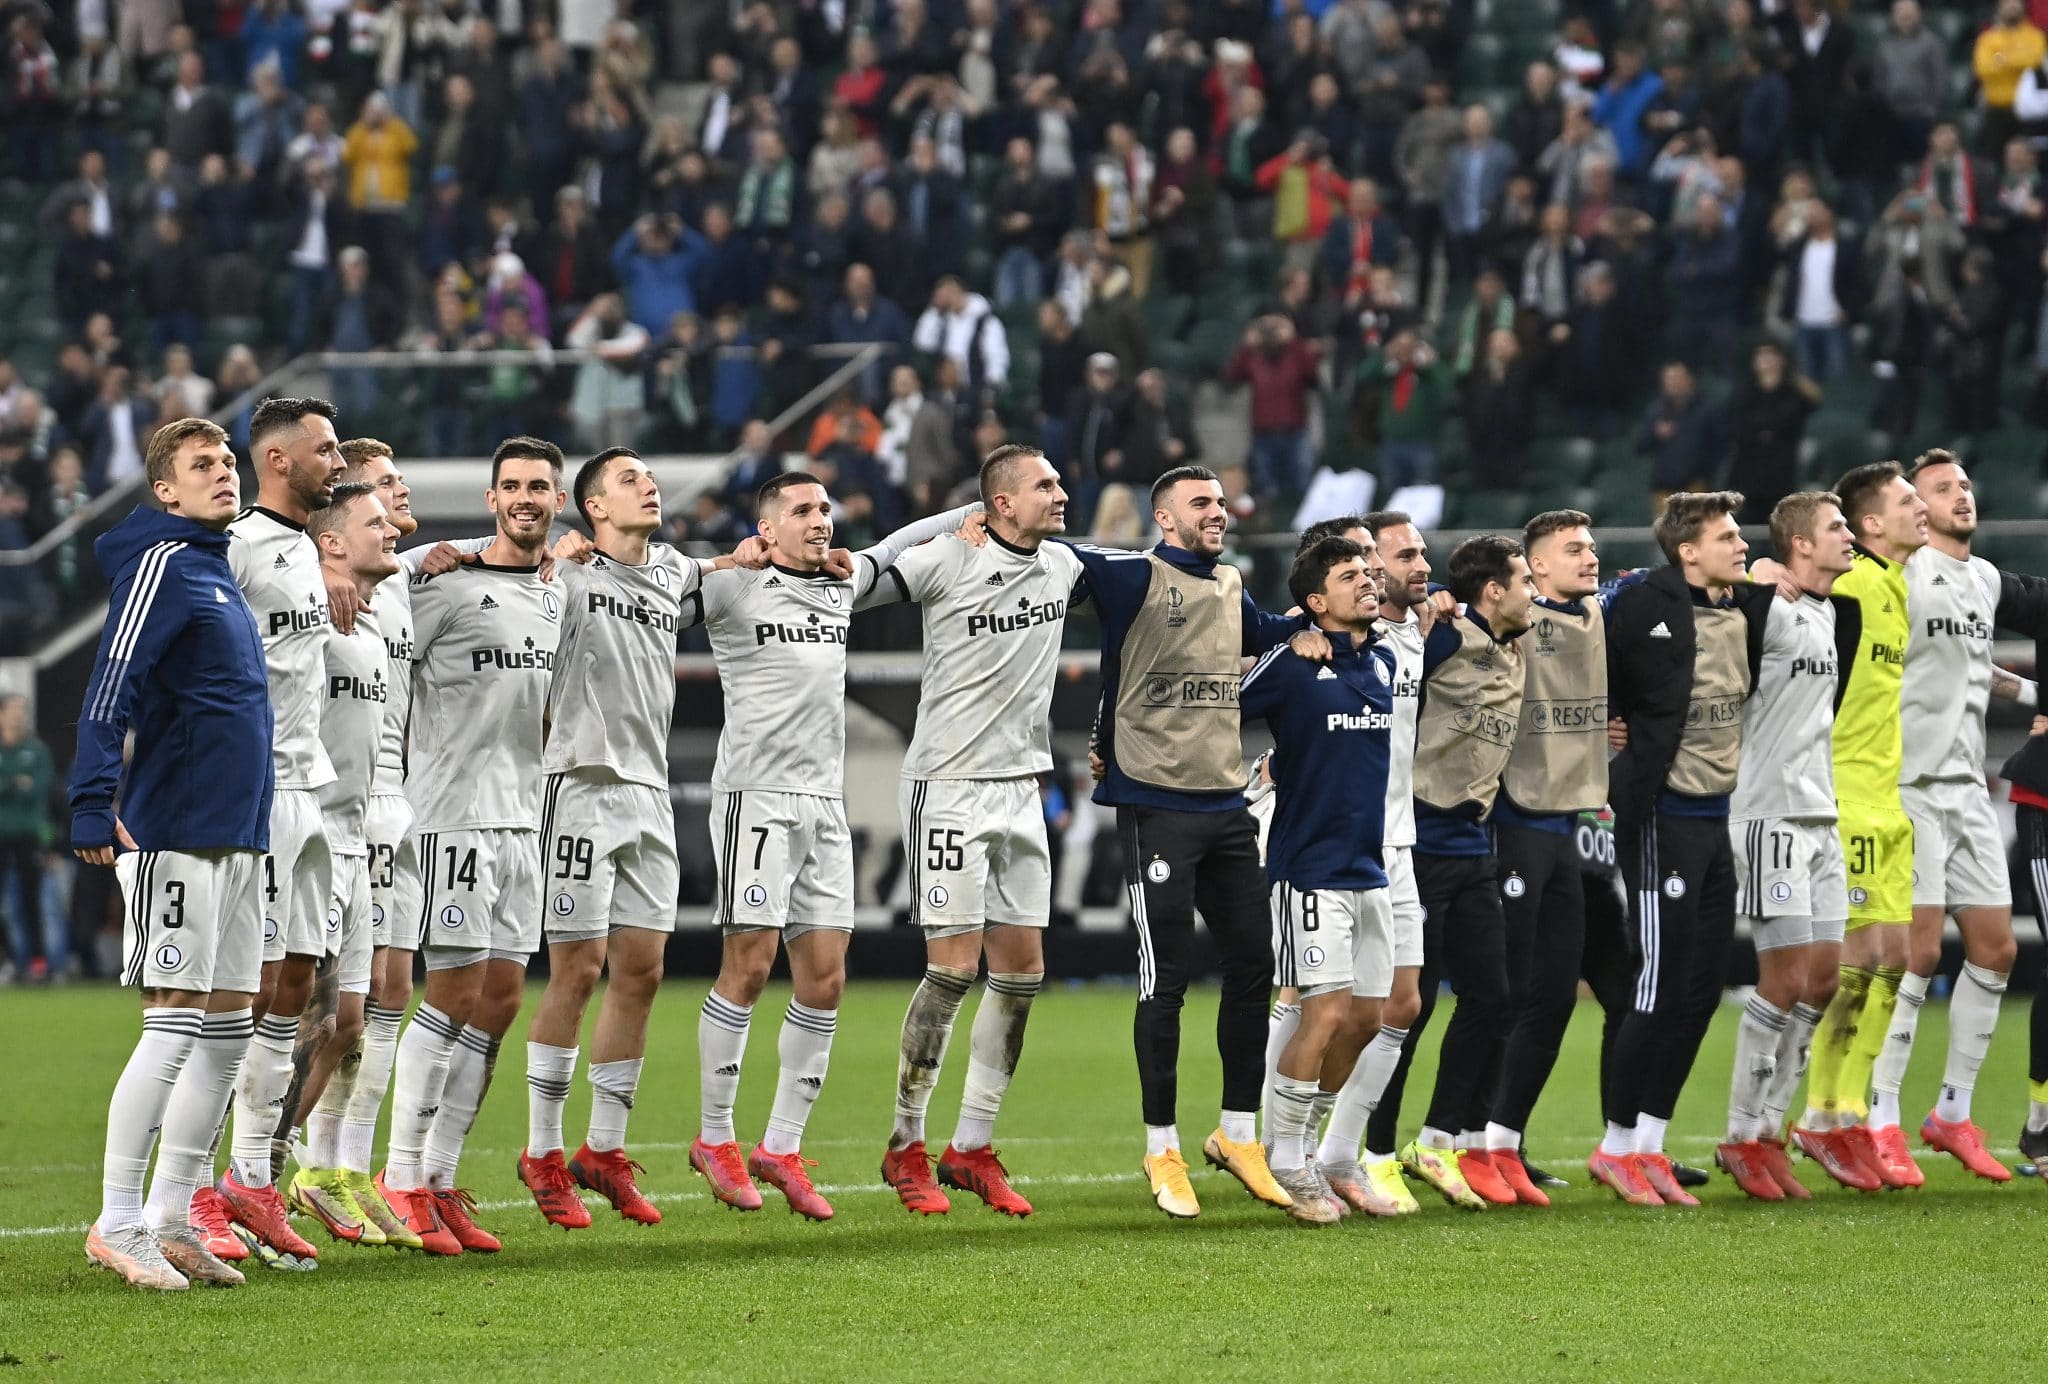 WARSAW, POLAND - SEPTEMBER 30: Players of Legia Warsaw celebrate after victory in the UEFA Europa League group C match between Legia Warszawa and Leicester City at Wojska Polskiego Stadium on September 30, 2021 in Warsaw, Poland. (Photo by Adam Nurkiewicz/Getty Images)